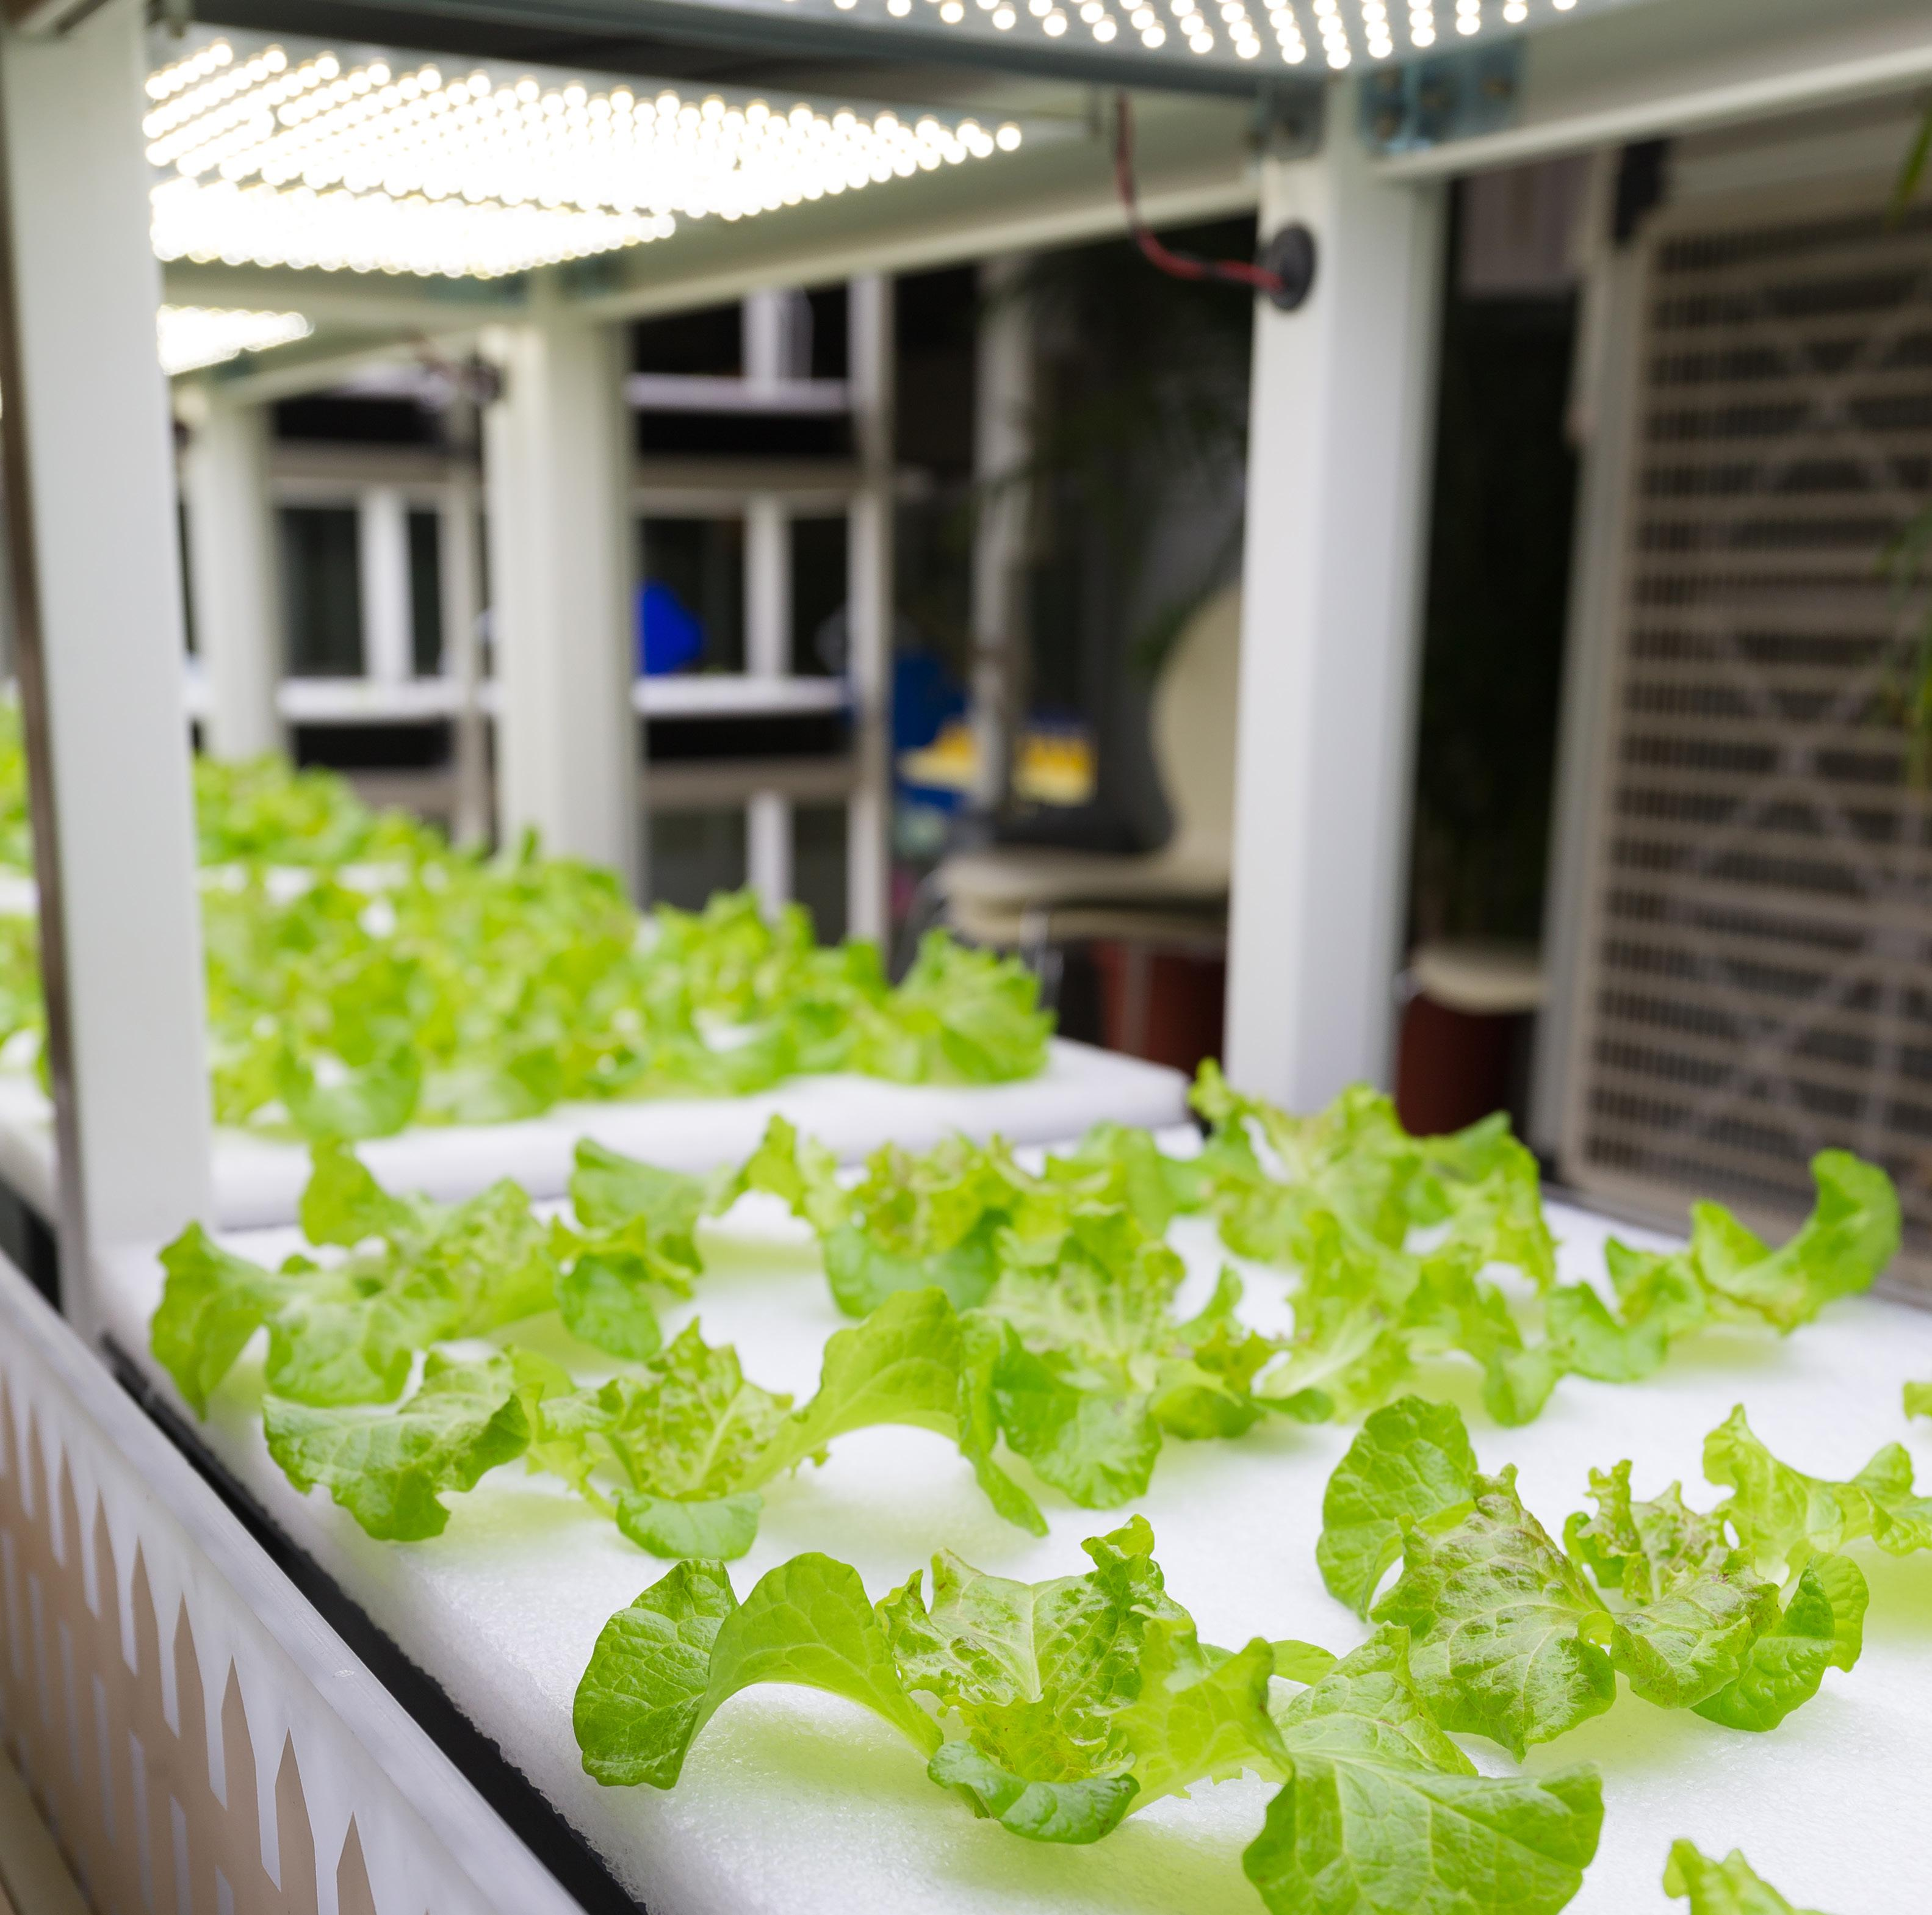 Diy Hydroponic Gardens How To Design And Build An